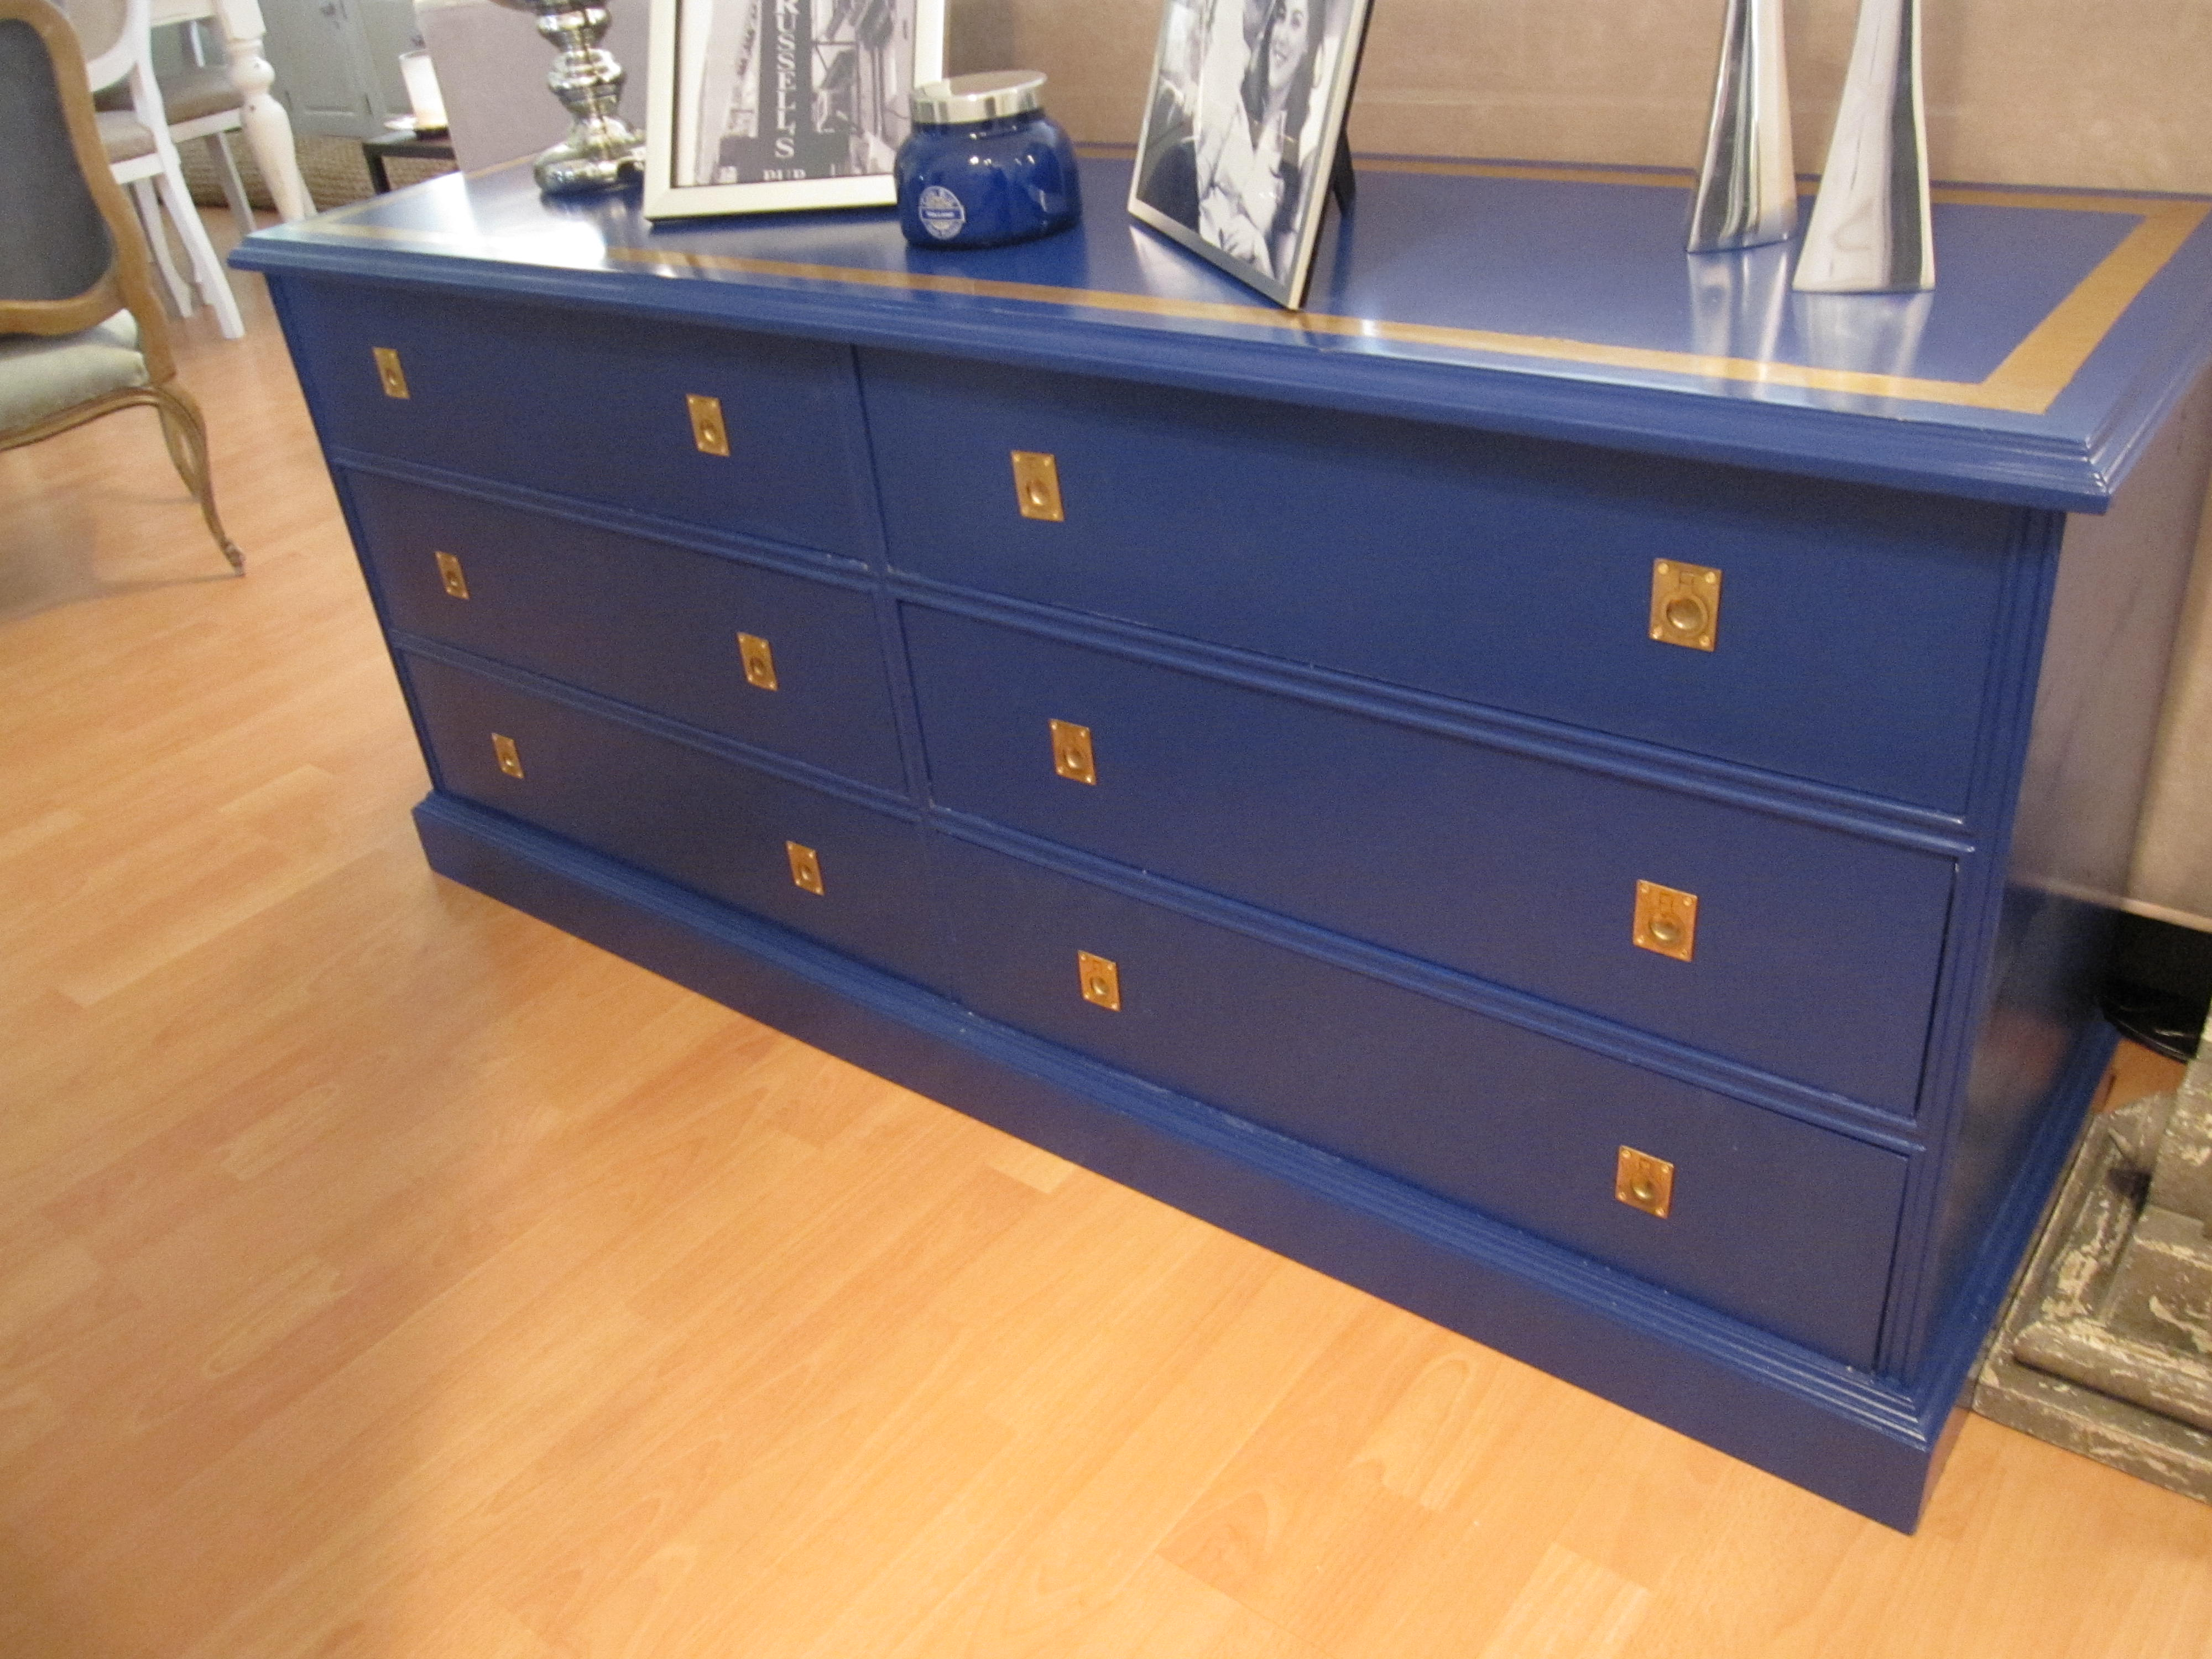 Picture of: Navy Blue Gold Sofa Table Campaign Style Dresser Lindauer Designs